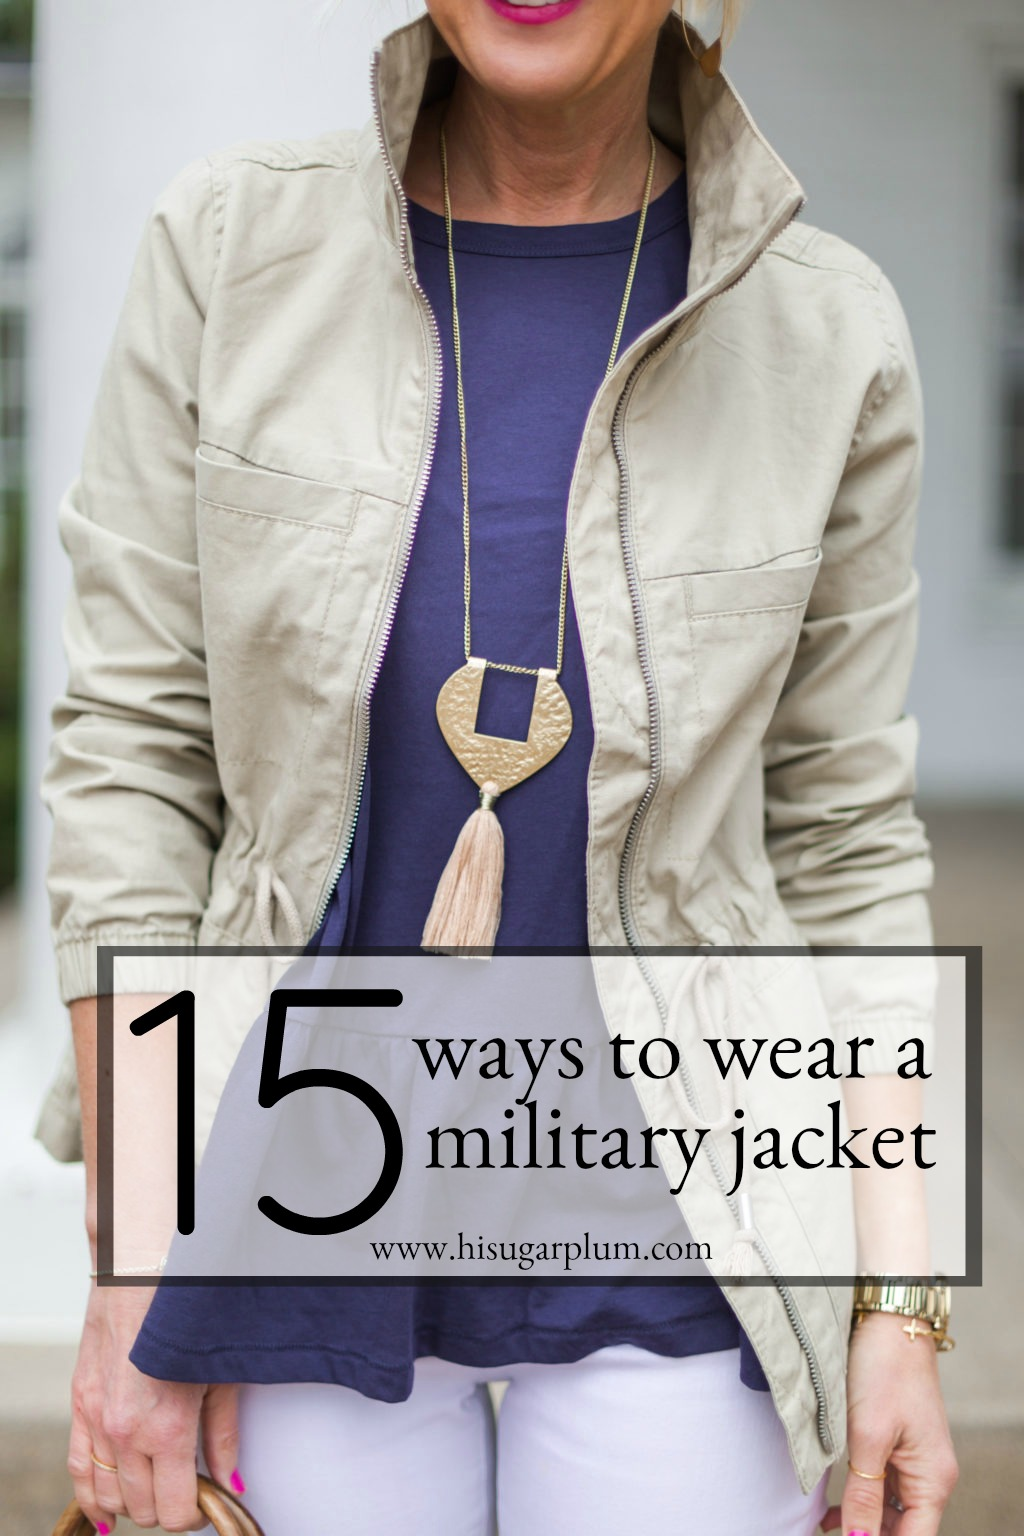 15 ways to wear a military jacket 2